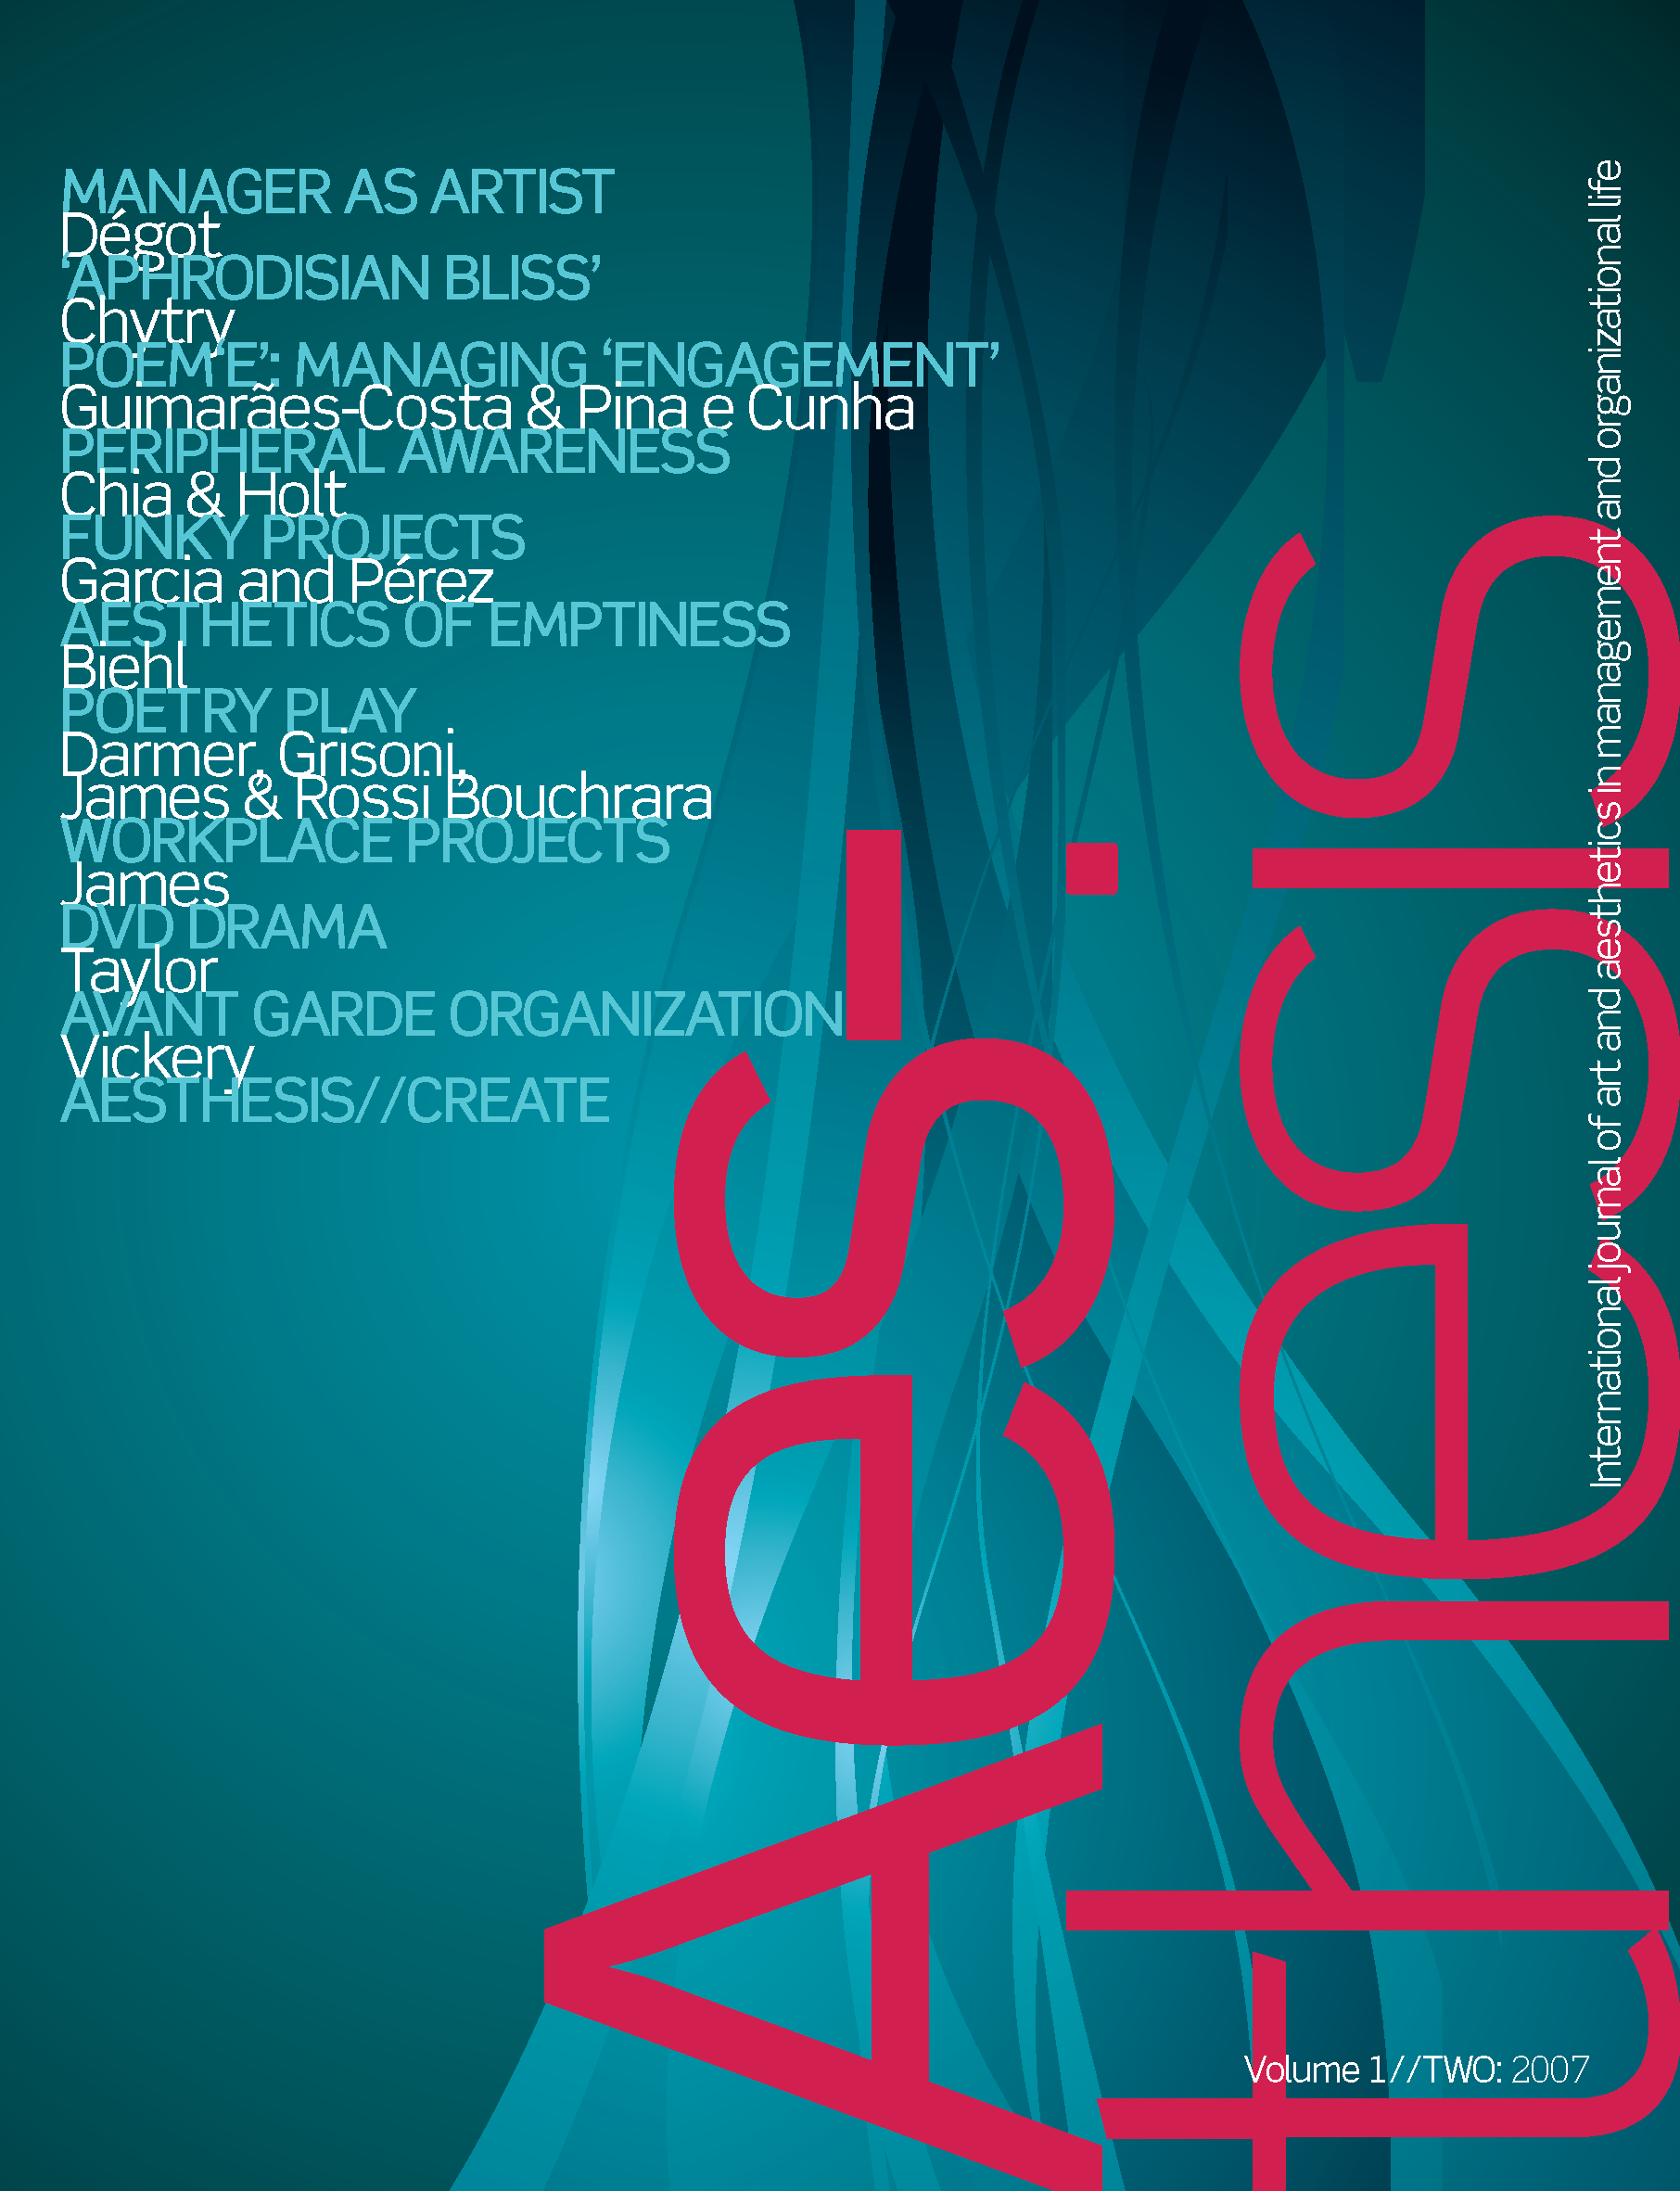 Aesthesis Vol. 1 Iss. 2